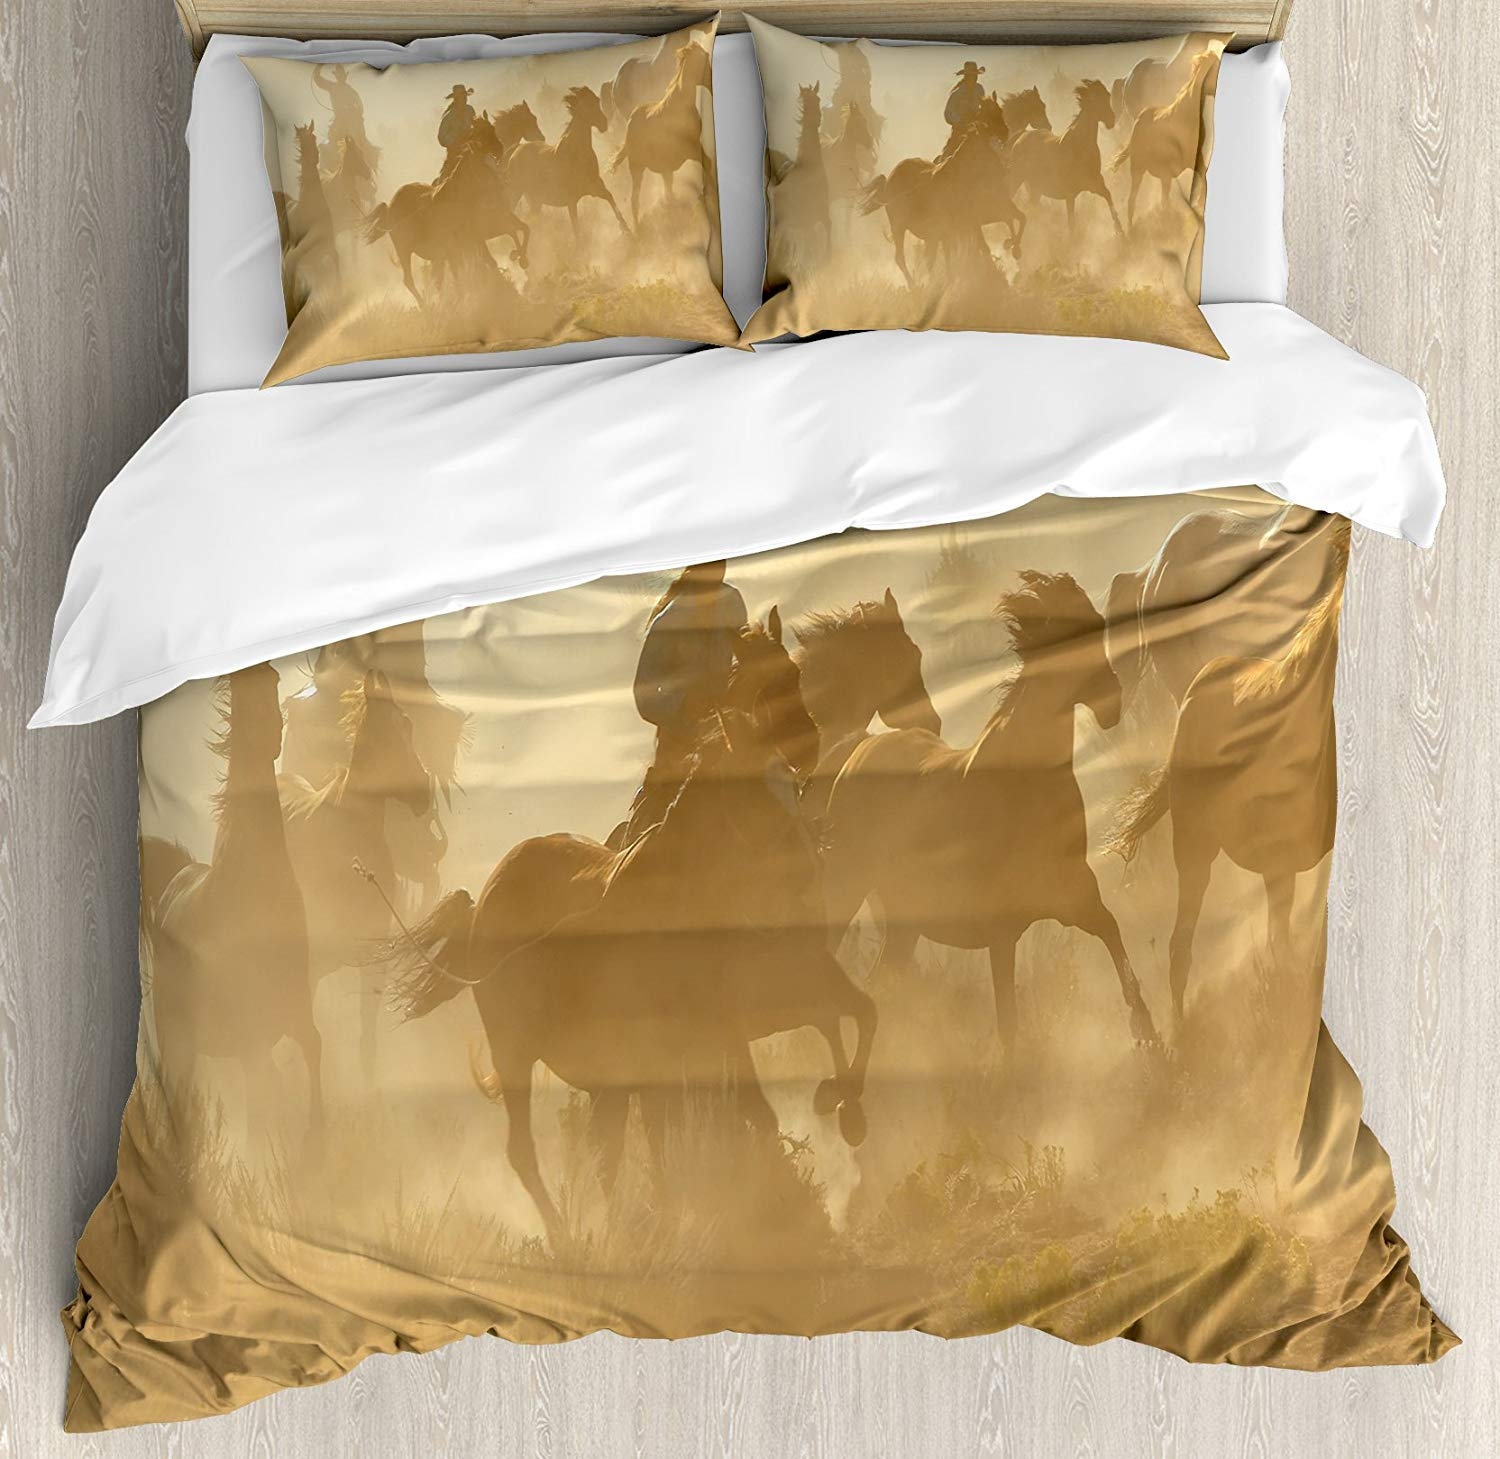 Western Duvet Cover Set King Size Galloping Running Horses Desert Two Cowboys Roping Wild Rural Countryside Bedding Set Brown